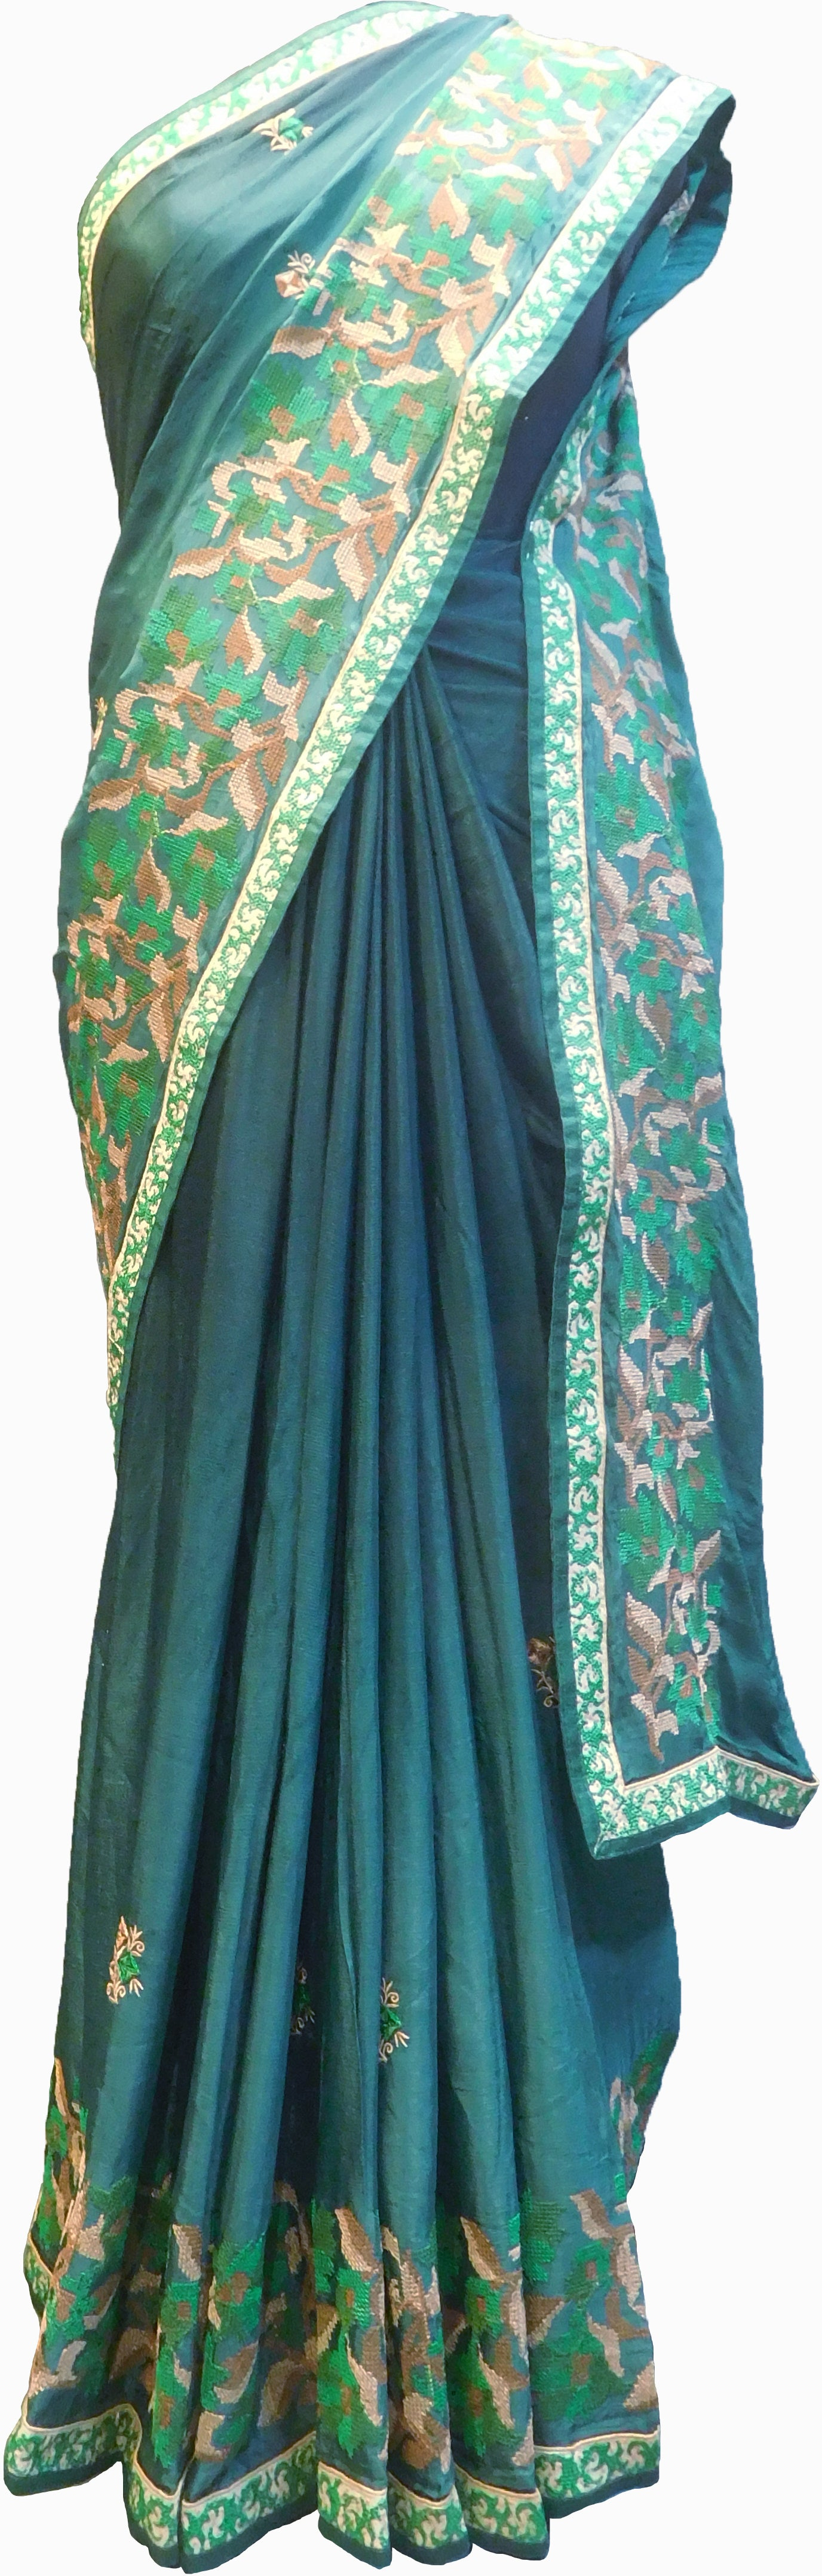 SMSAREE Green Designer Wedding Partywear Crepe (Chinon) Thread Hand Embroidery Work Bridal Saree Sari With Blouse Piece F176